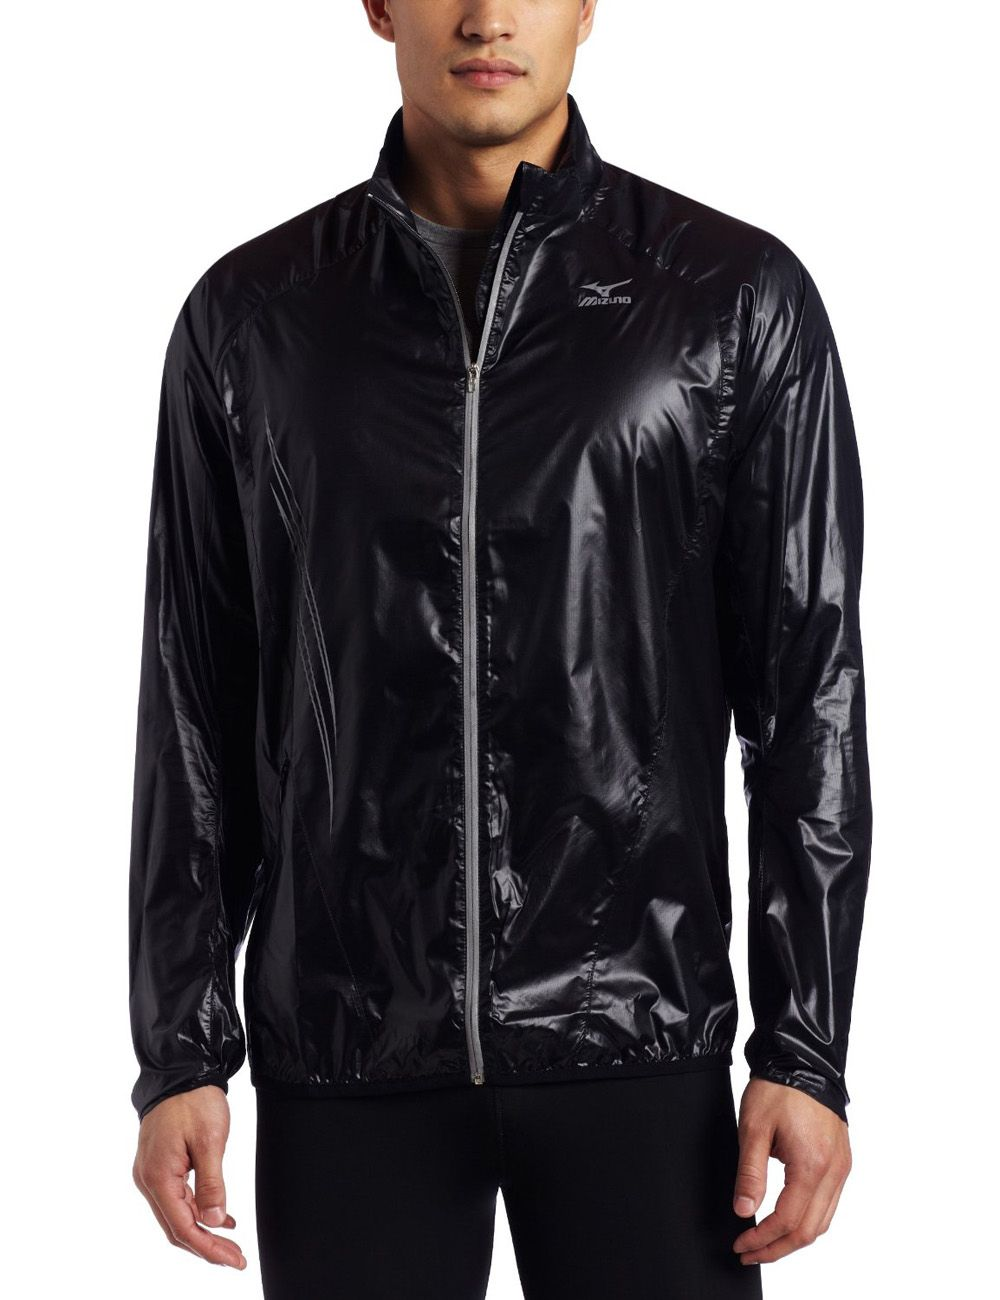 Mizuno Men's Cabrakan Running Nylon Jacket | MENS NYLON JACKETS ...